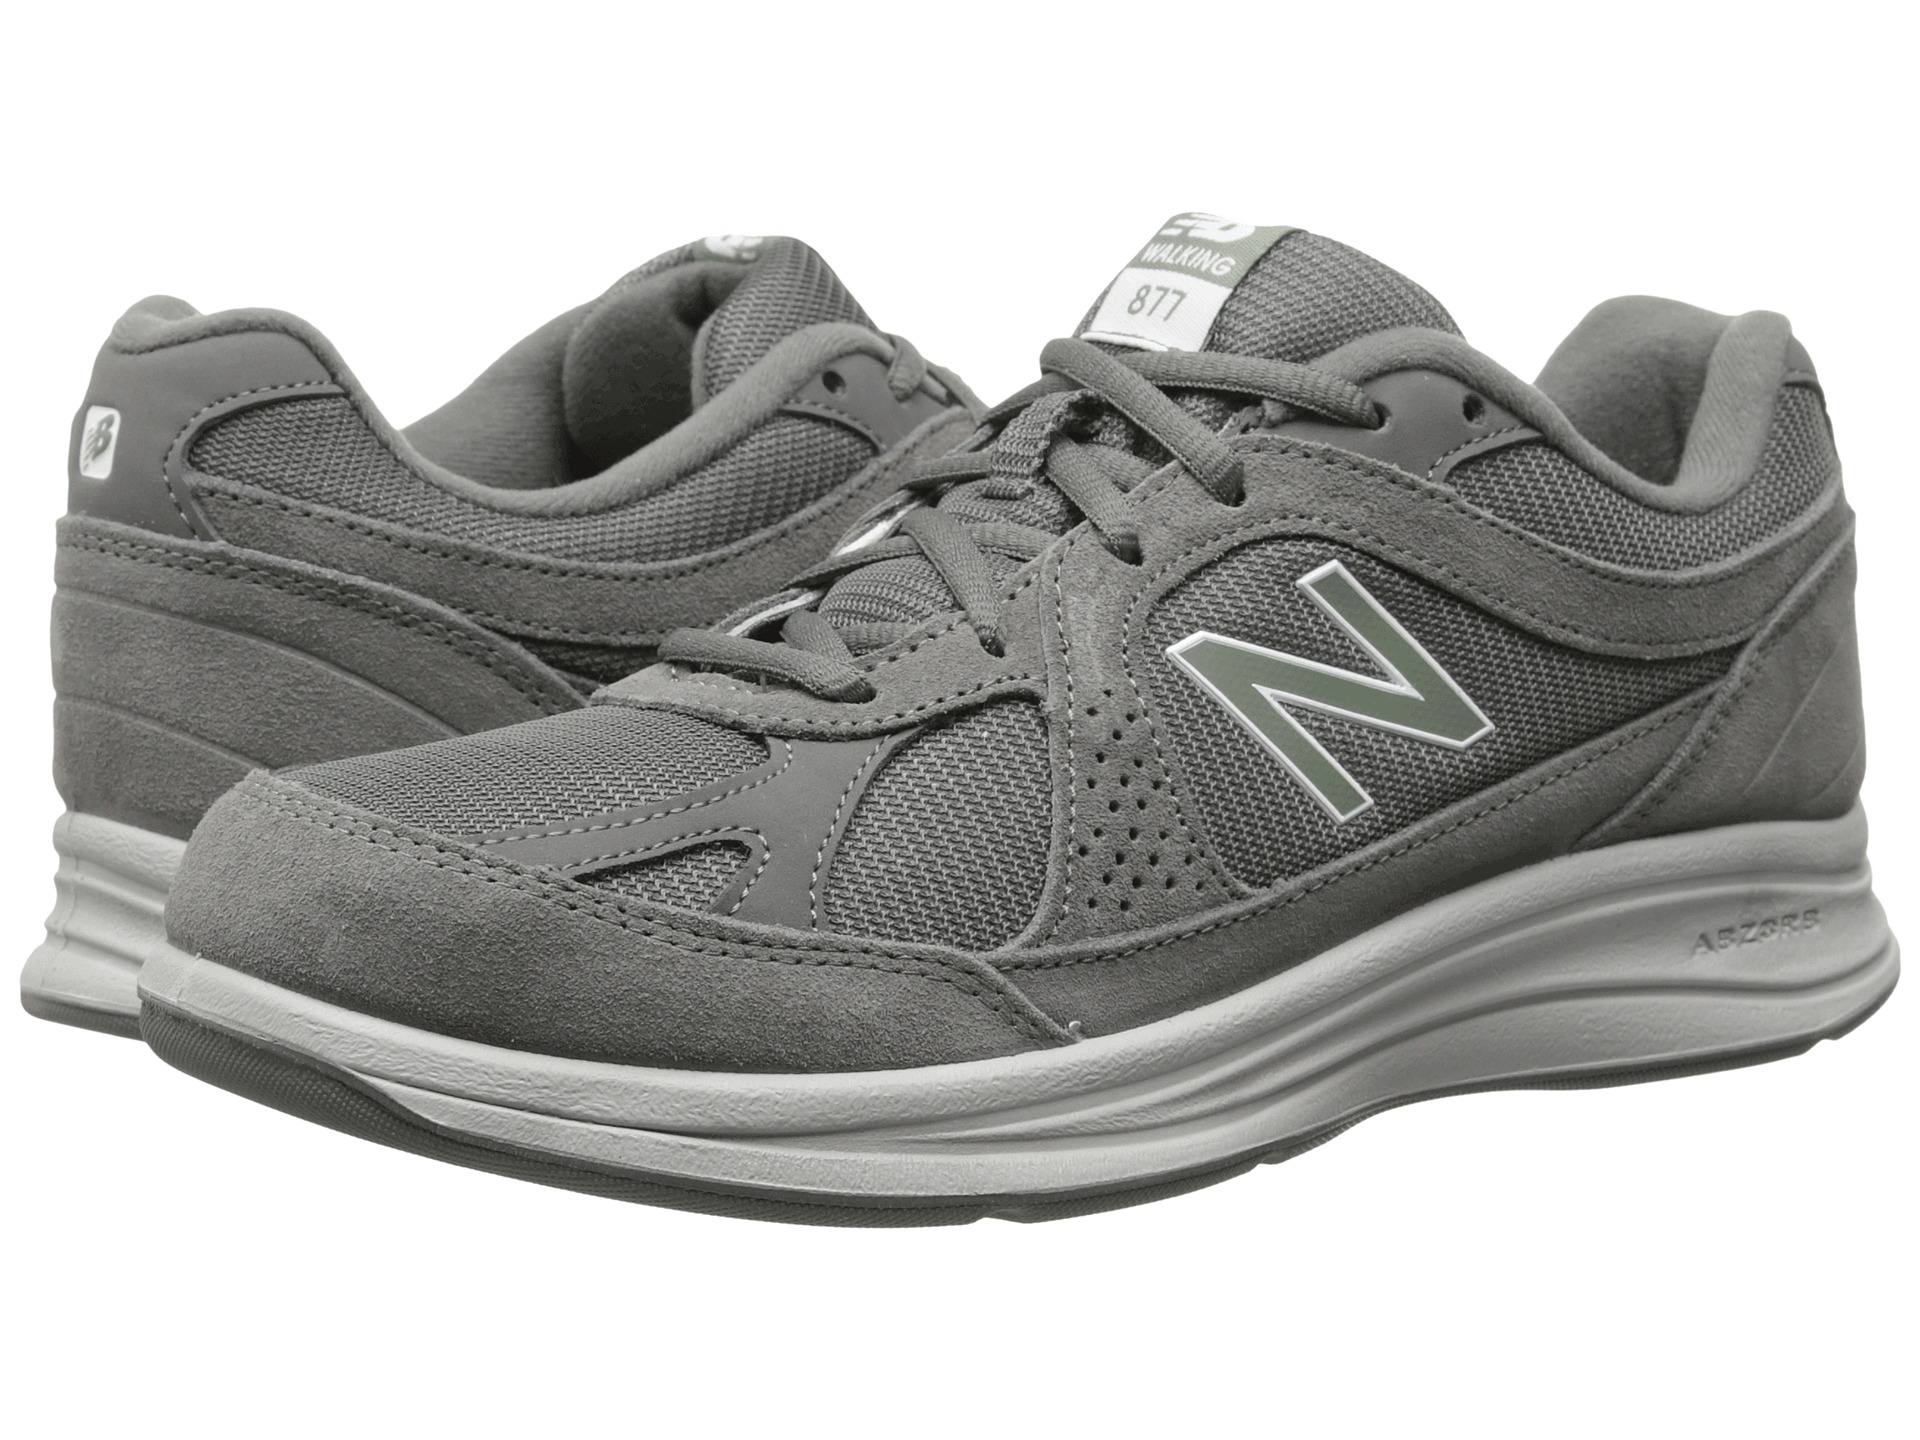 Zappos Mens Sneakers Athletic Shoes